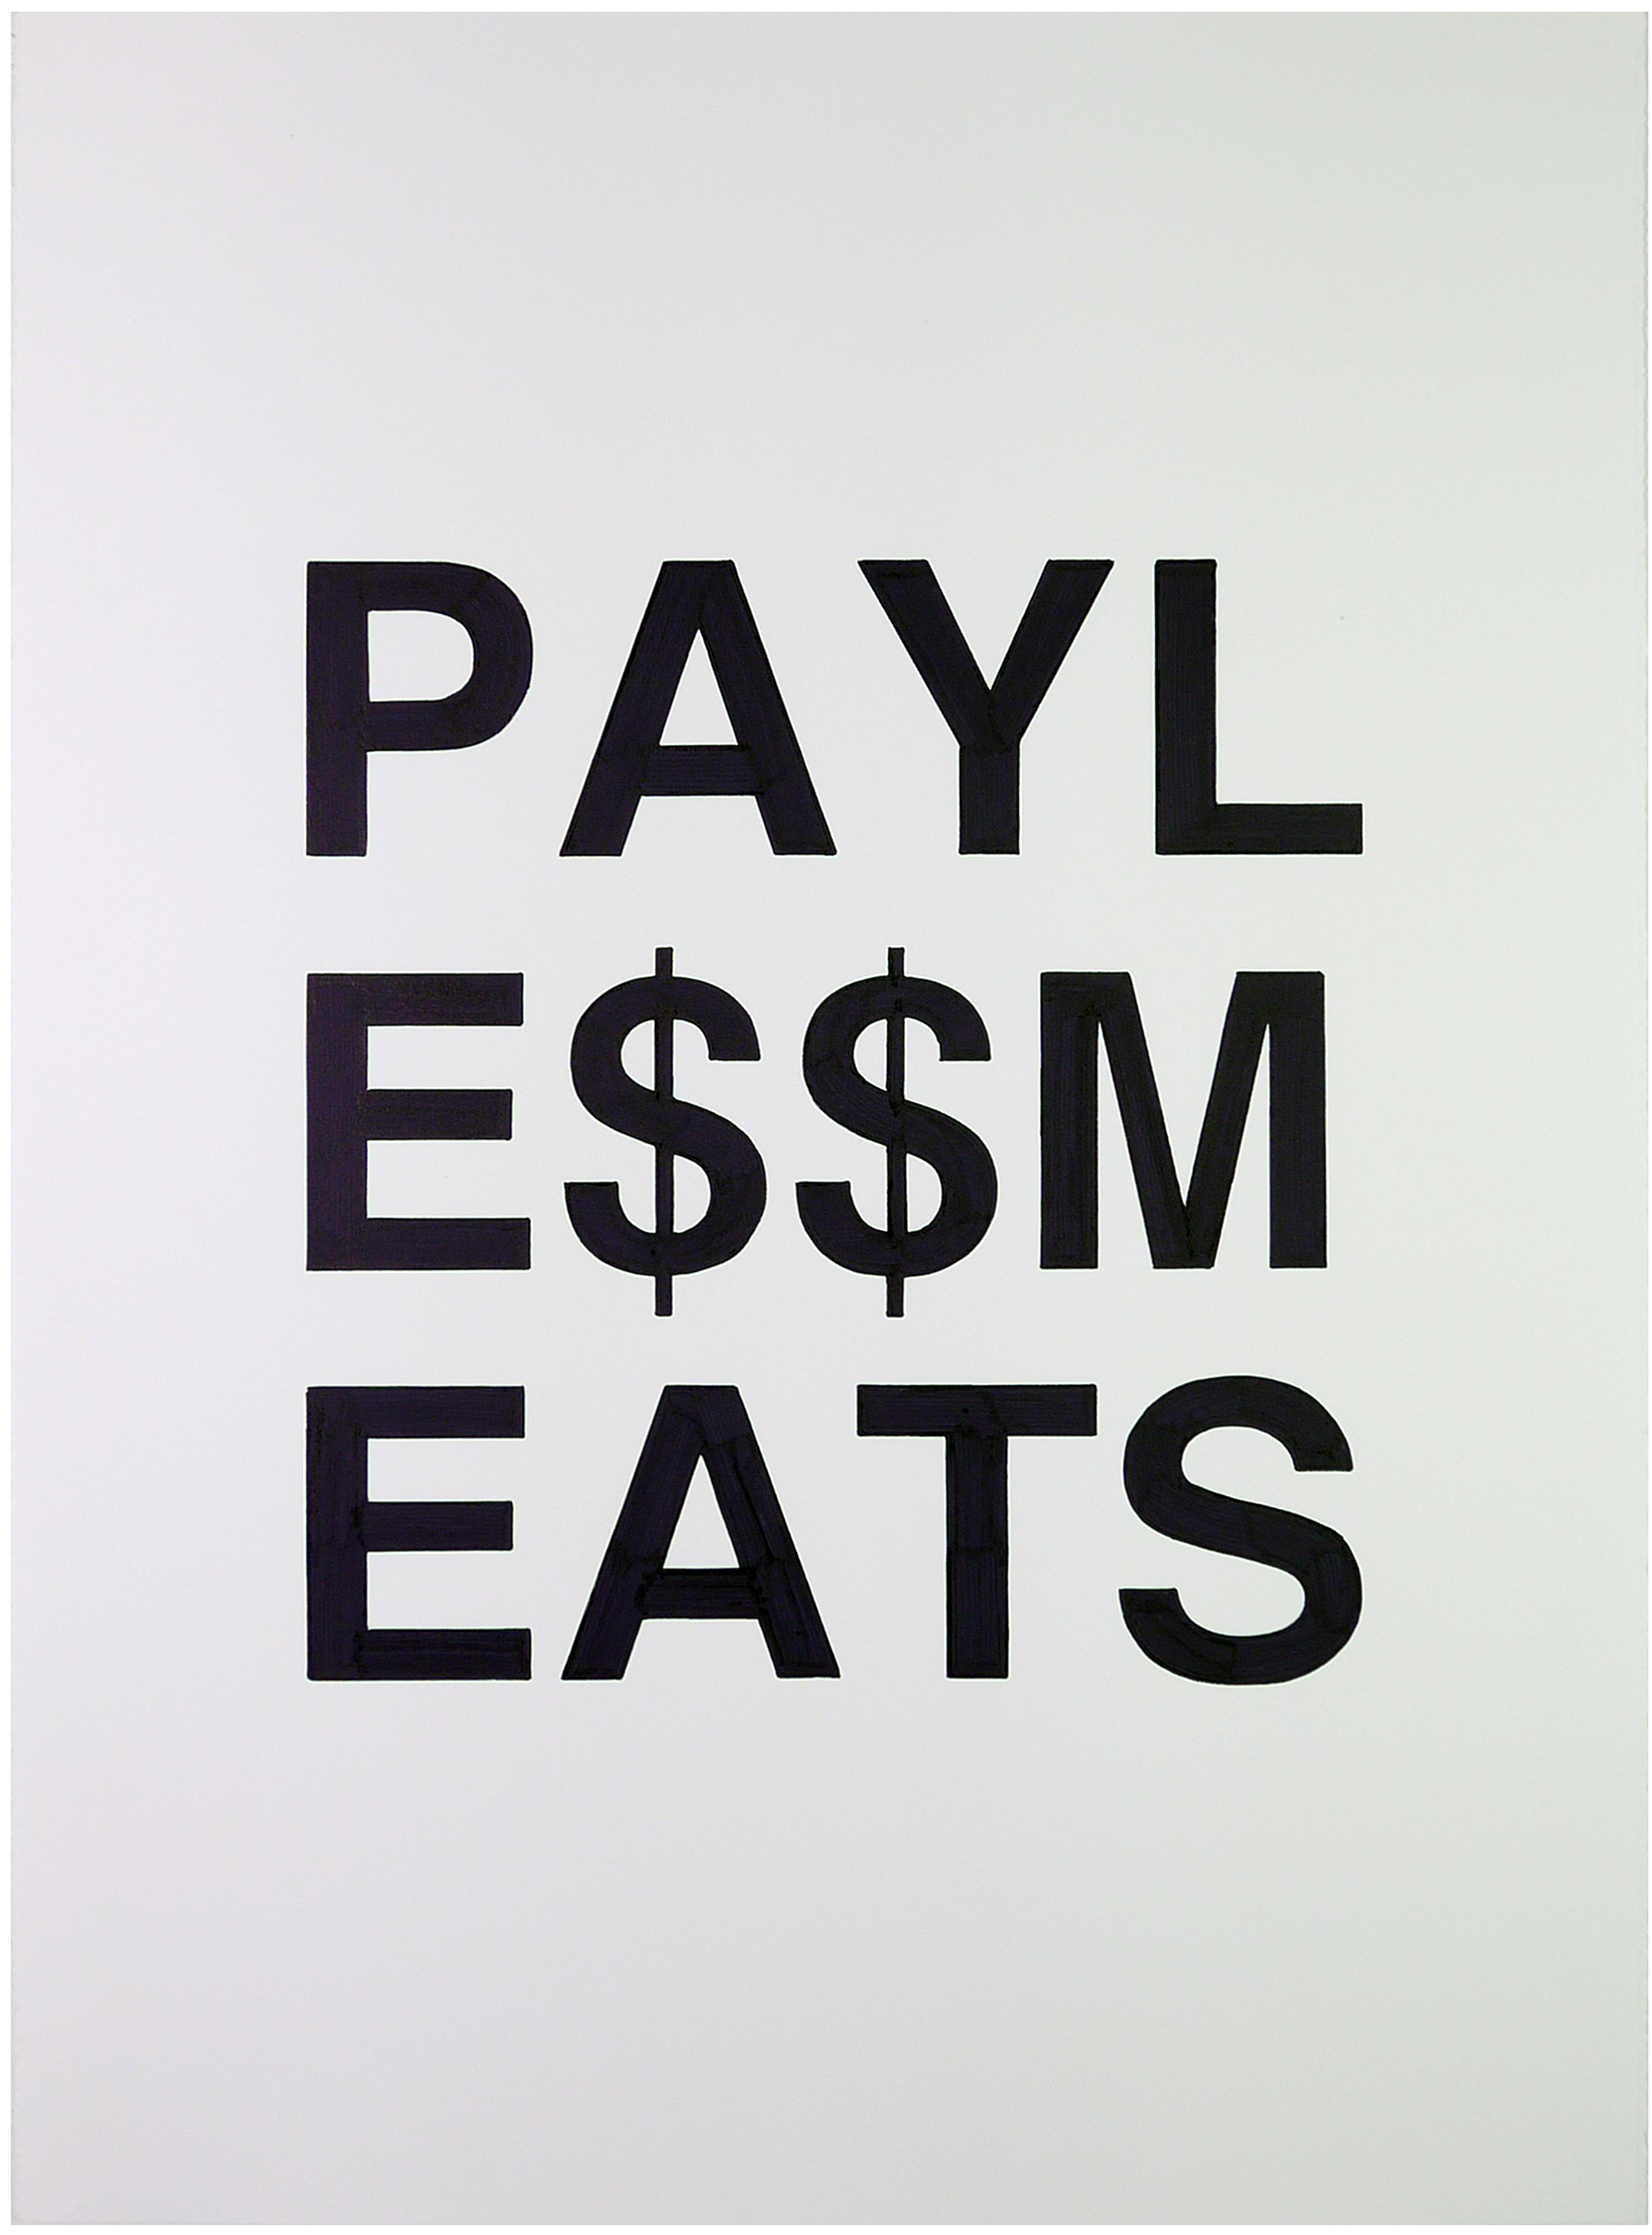 payless meats  22 x 30 inches  ink on paper